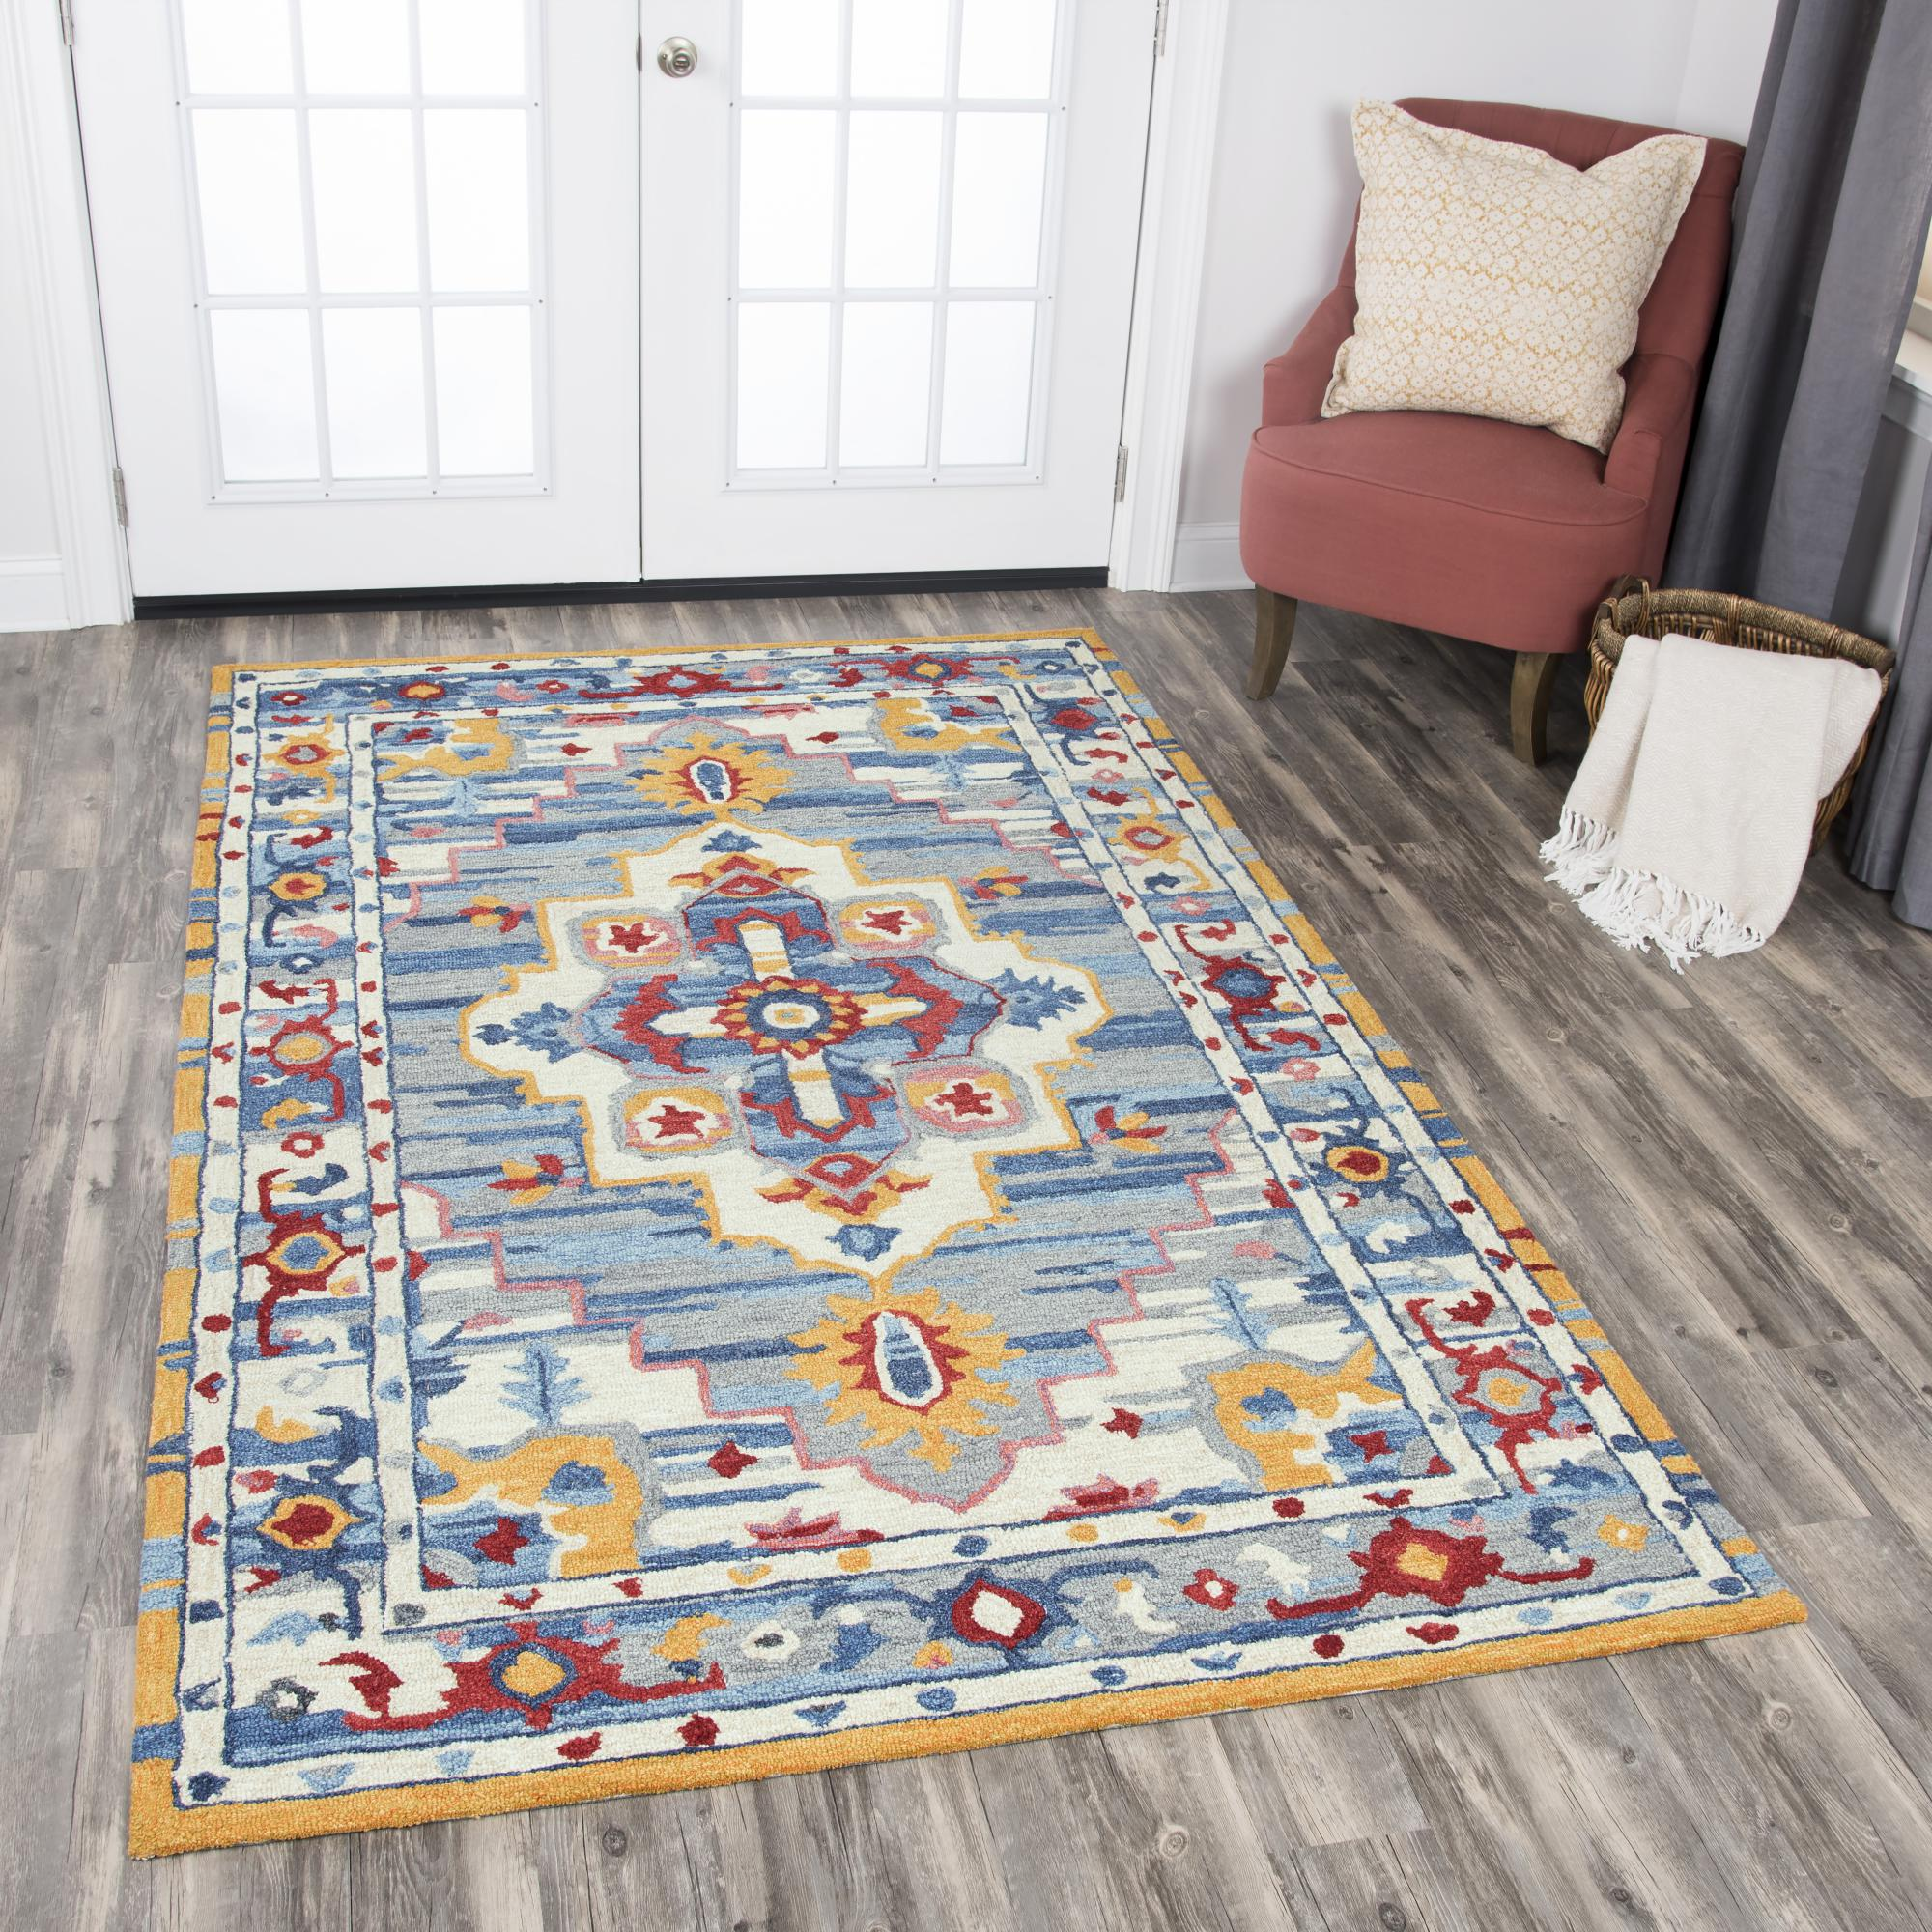 Rizzy Home ZI021B Natural 9' x 12' Hand-Tufted Area Rug